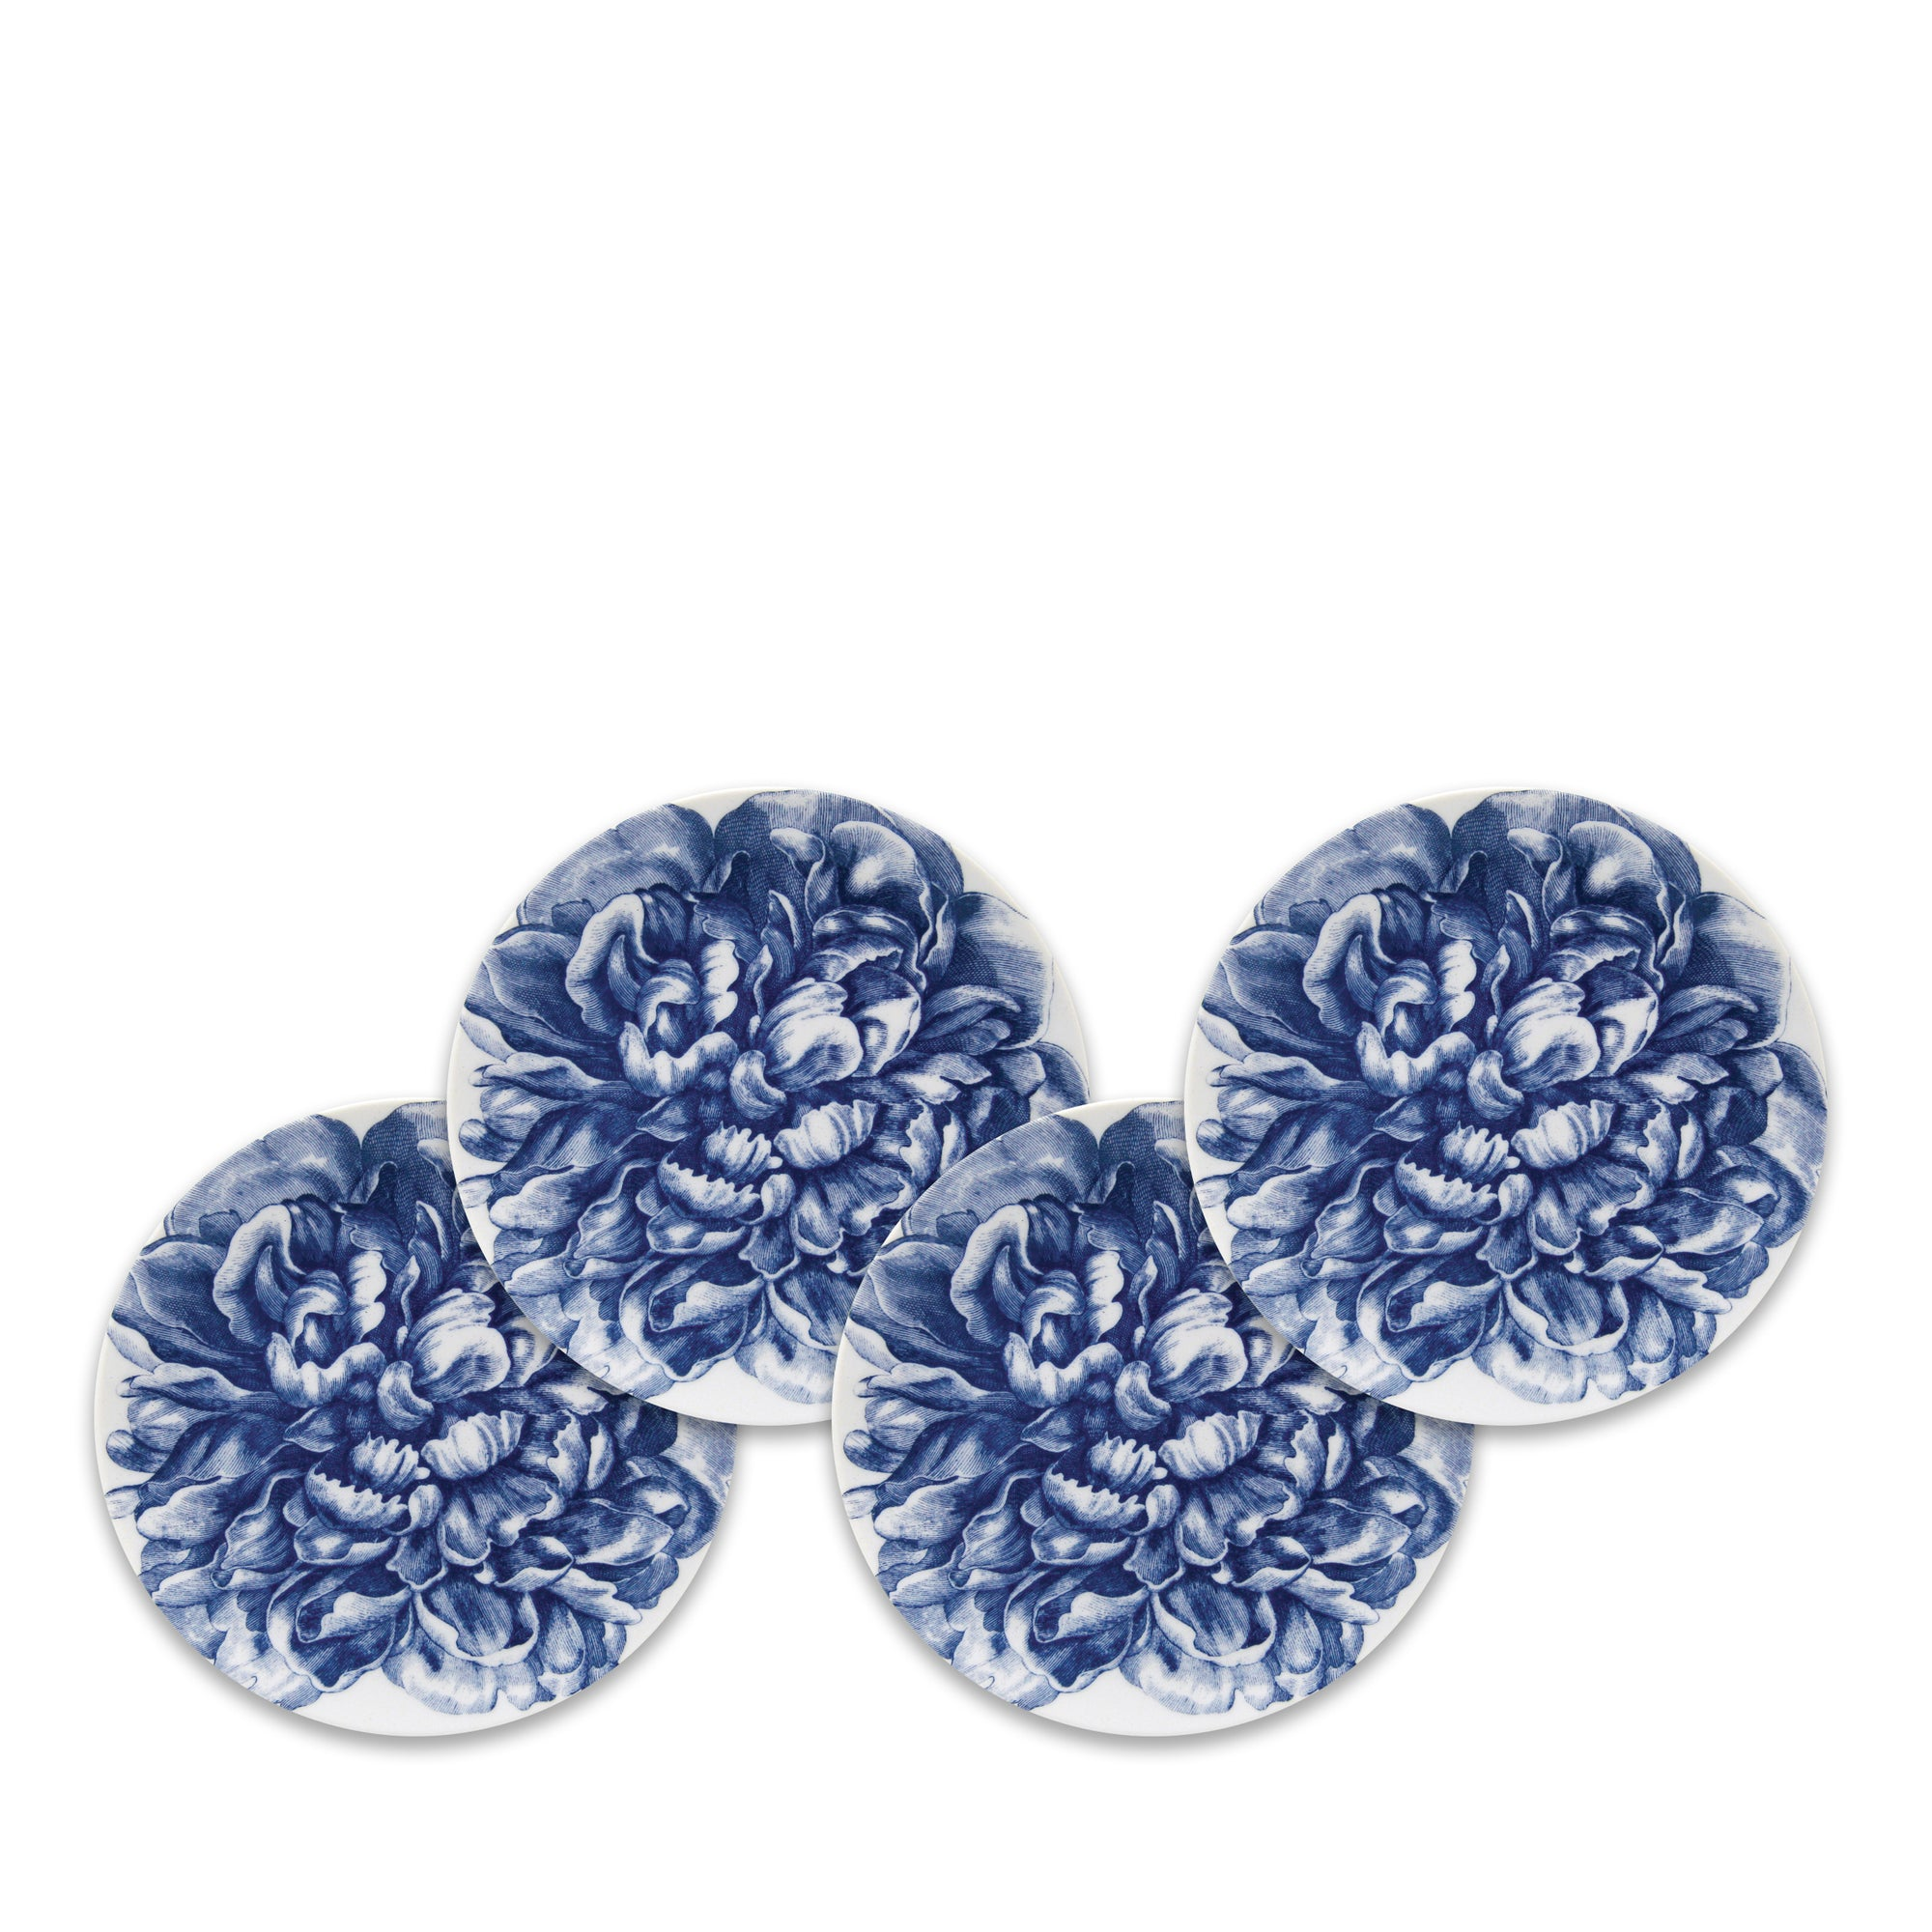 Peony Blue Full Canapé Plates Boxed Set/4 - Caskata